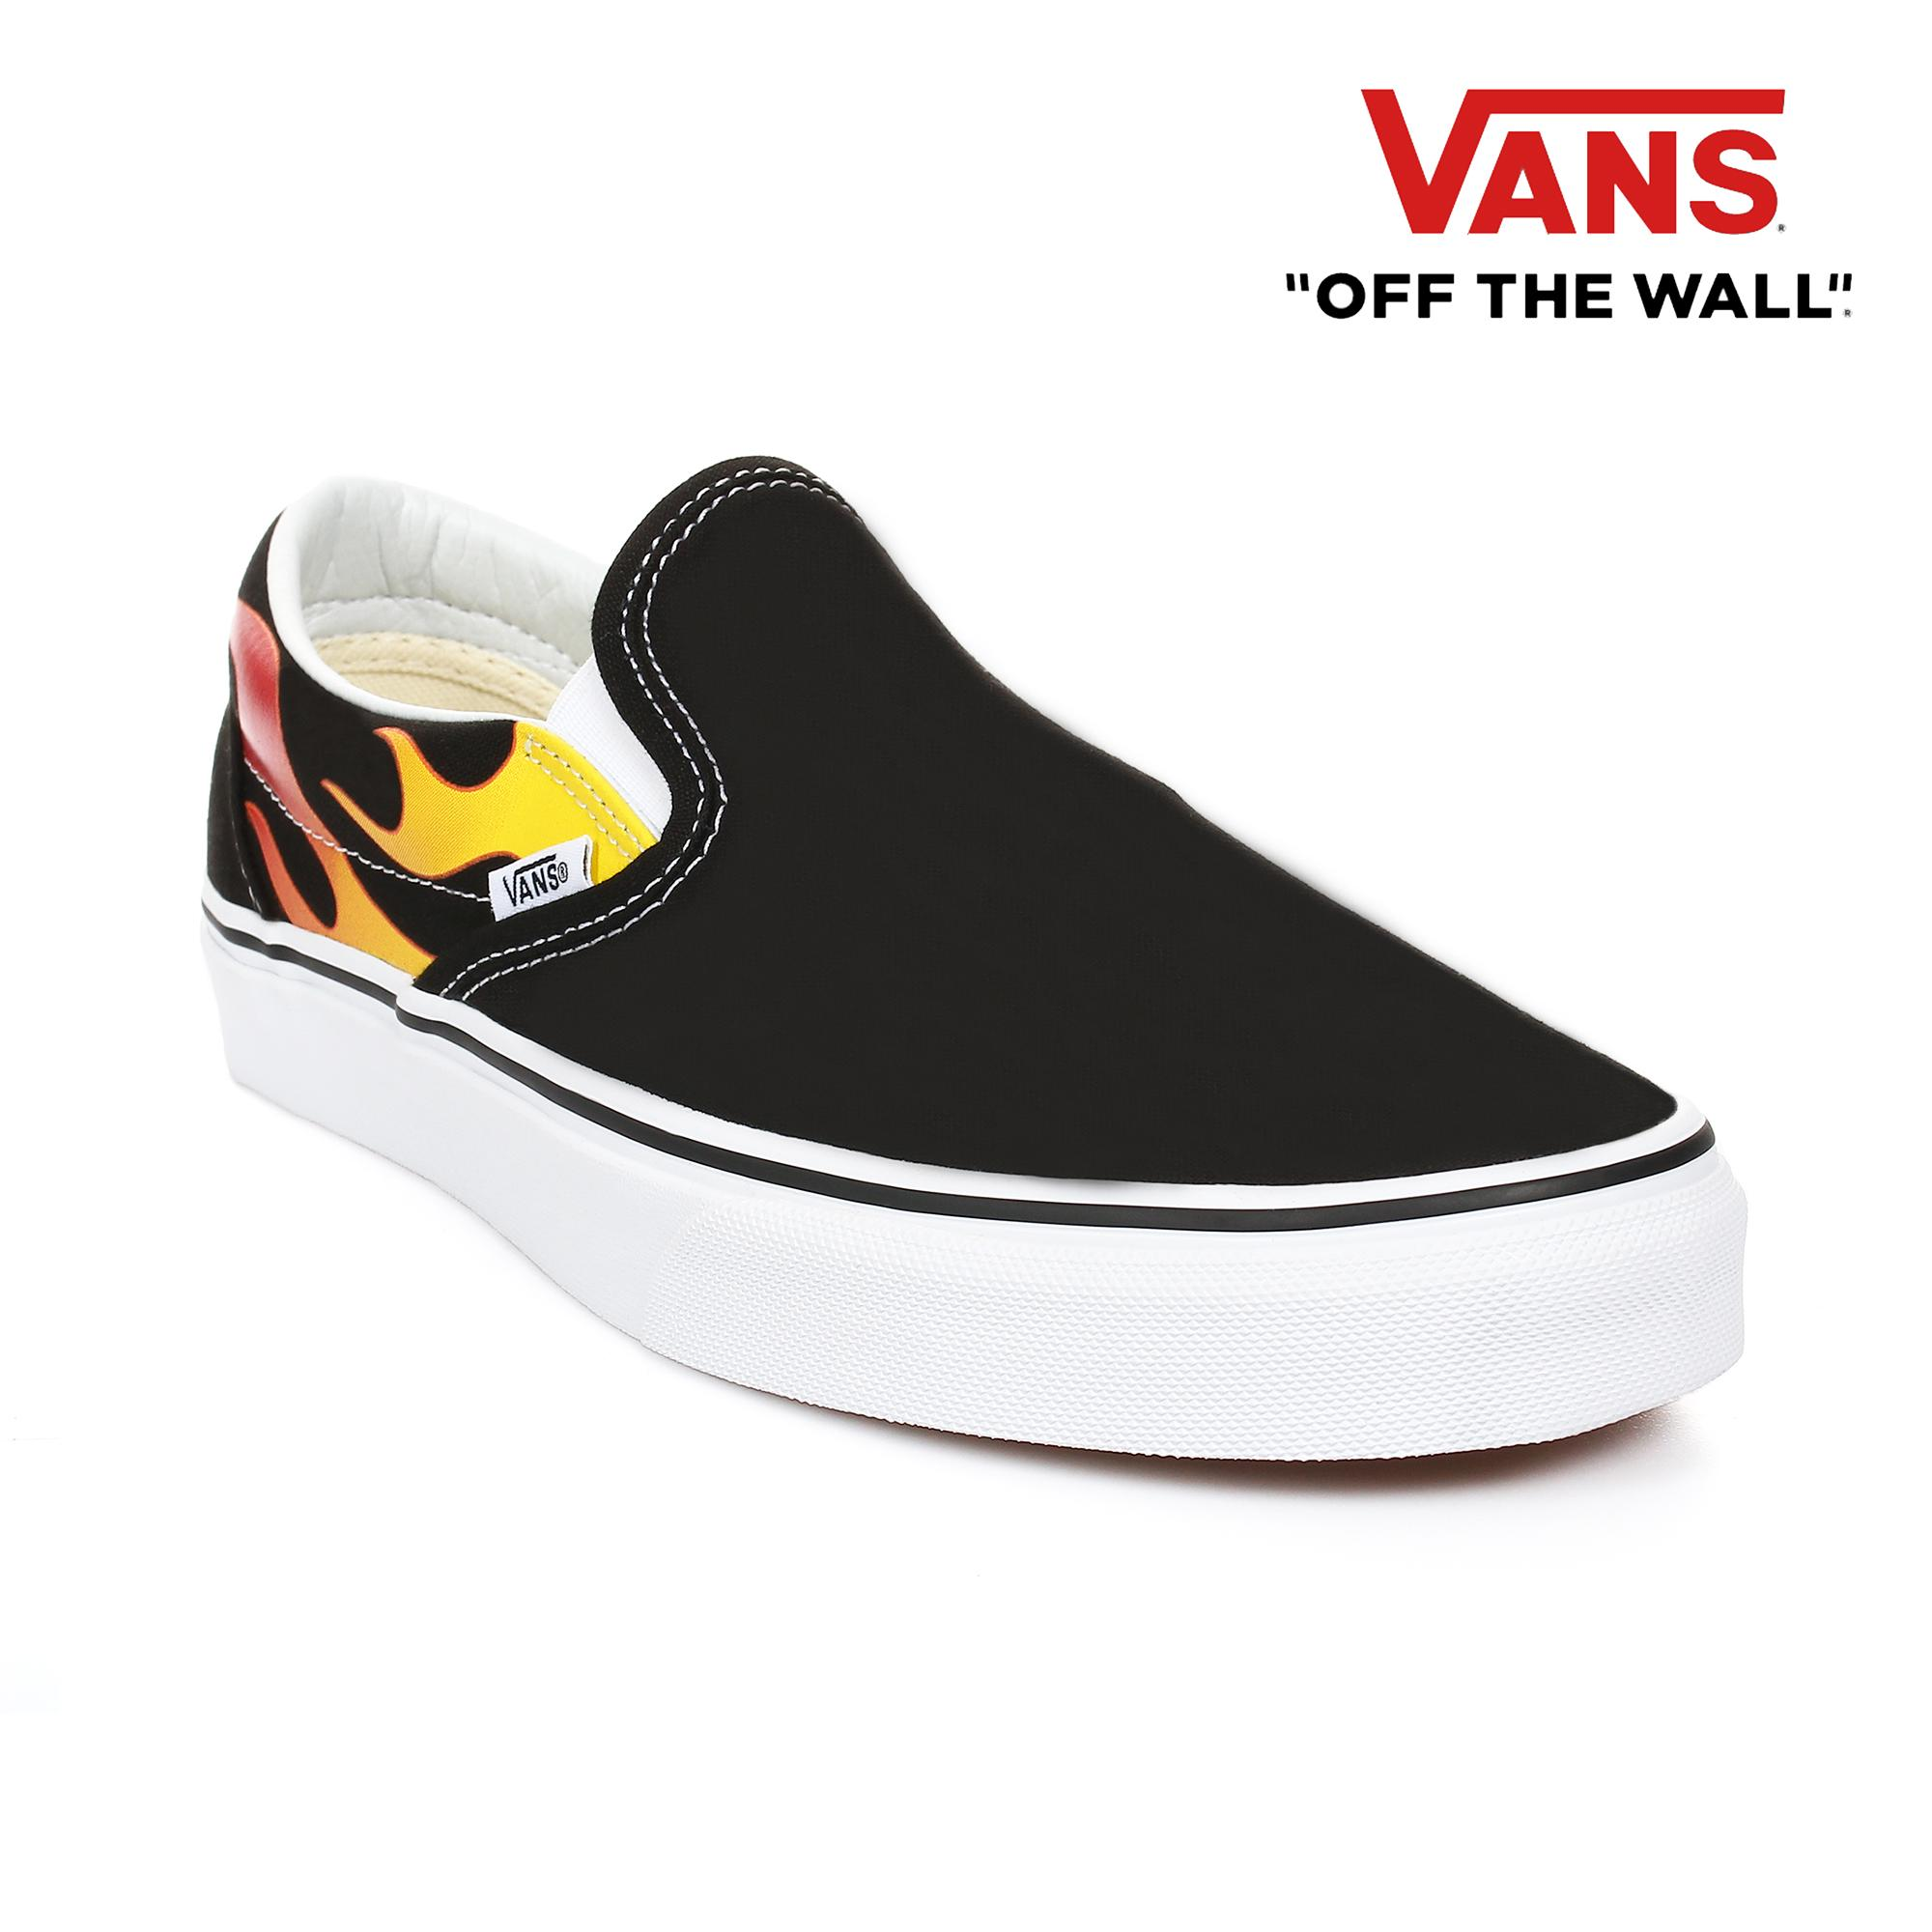 Vans Shoes for Men Philippines - Vans Men s Shoes for sale - prices ... ec7f85993